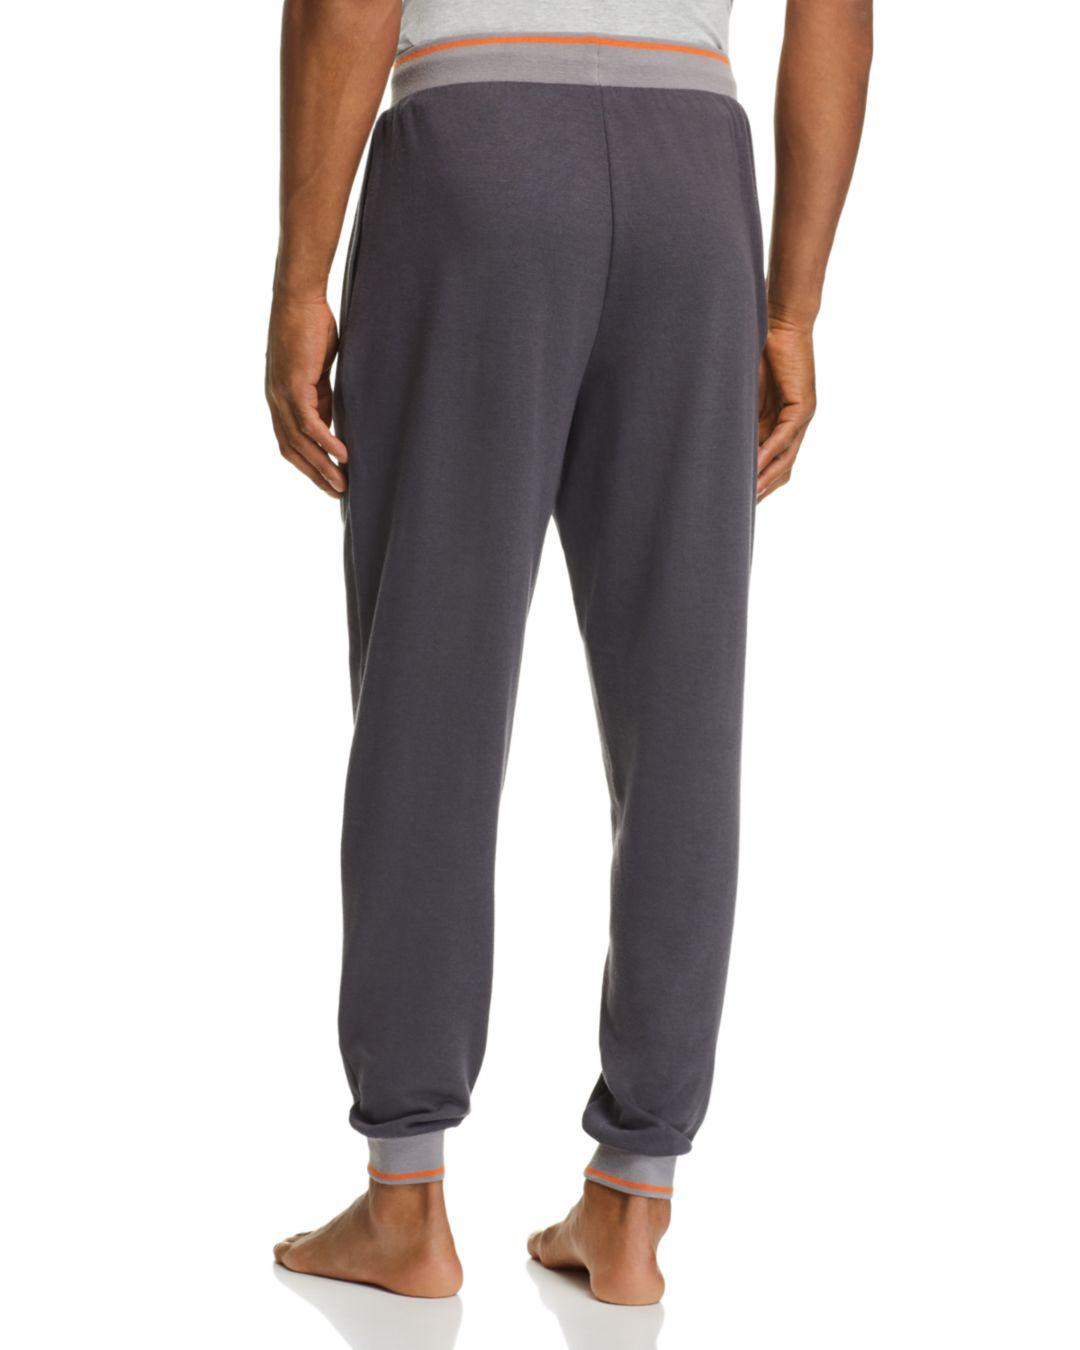 3cdbcc5ce895 Lyst - Psycho Bunny Plush Knit Lounge Jogger Pants in Gray for Men